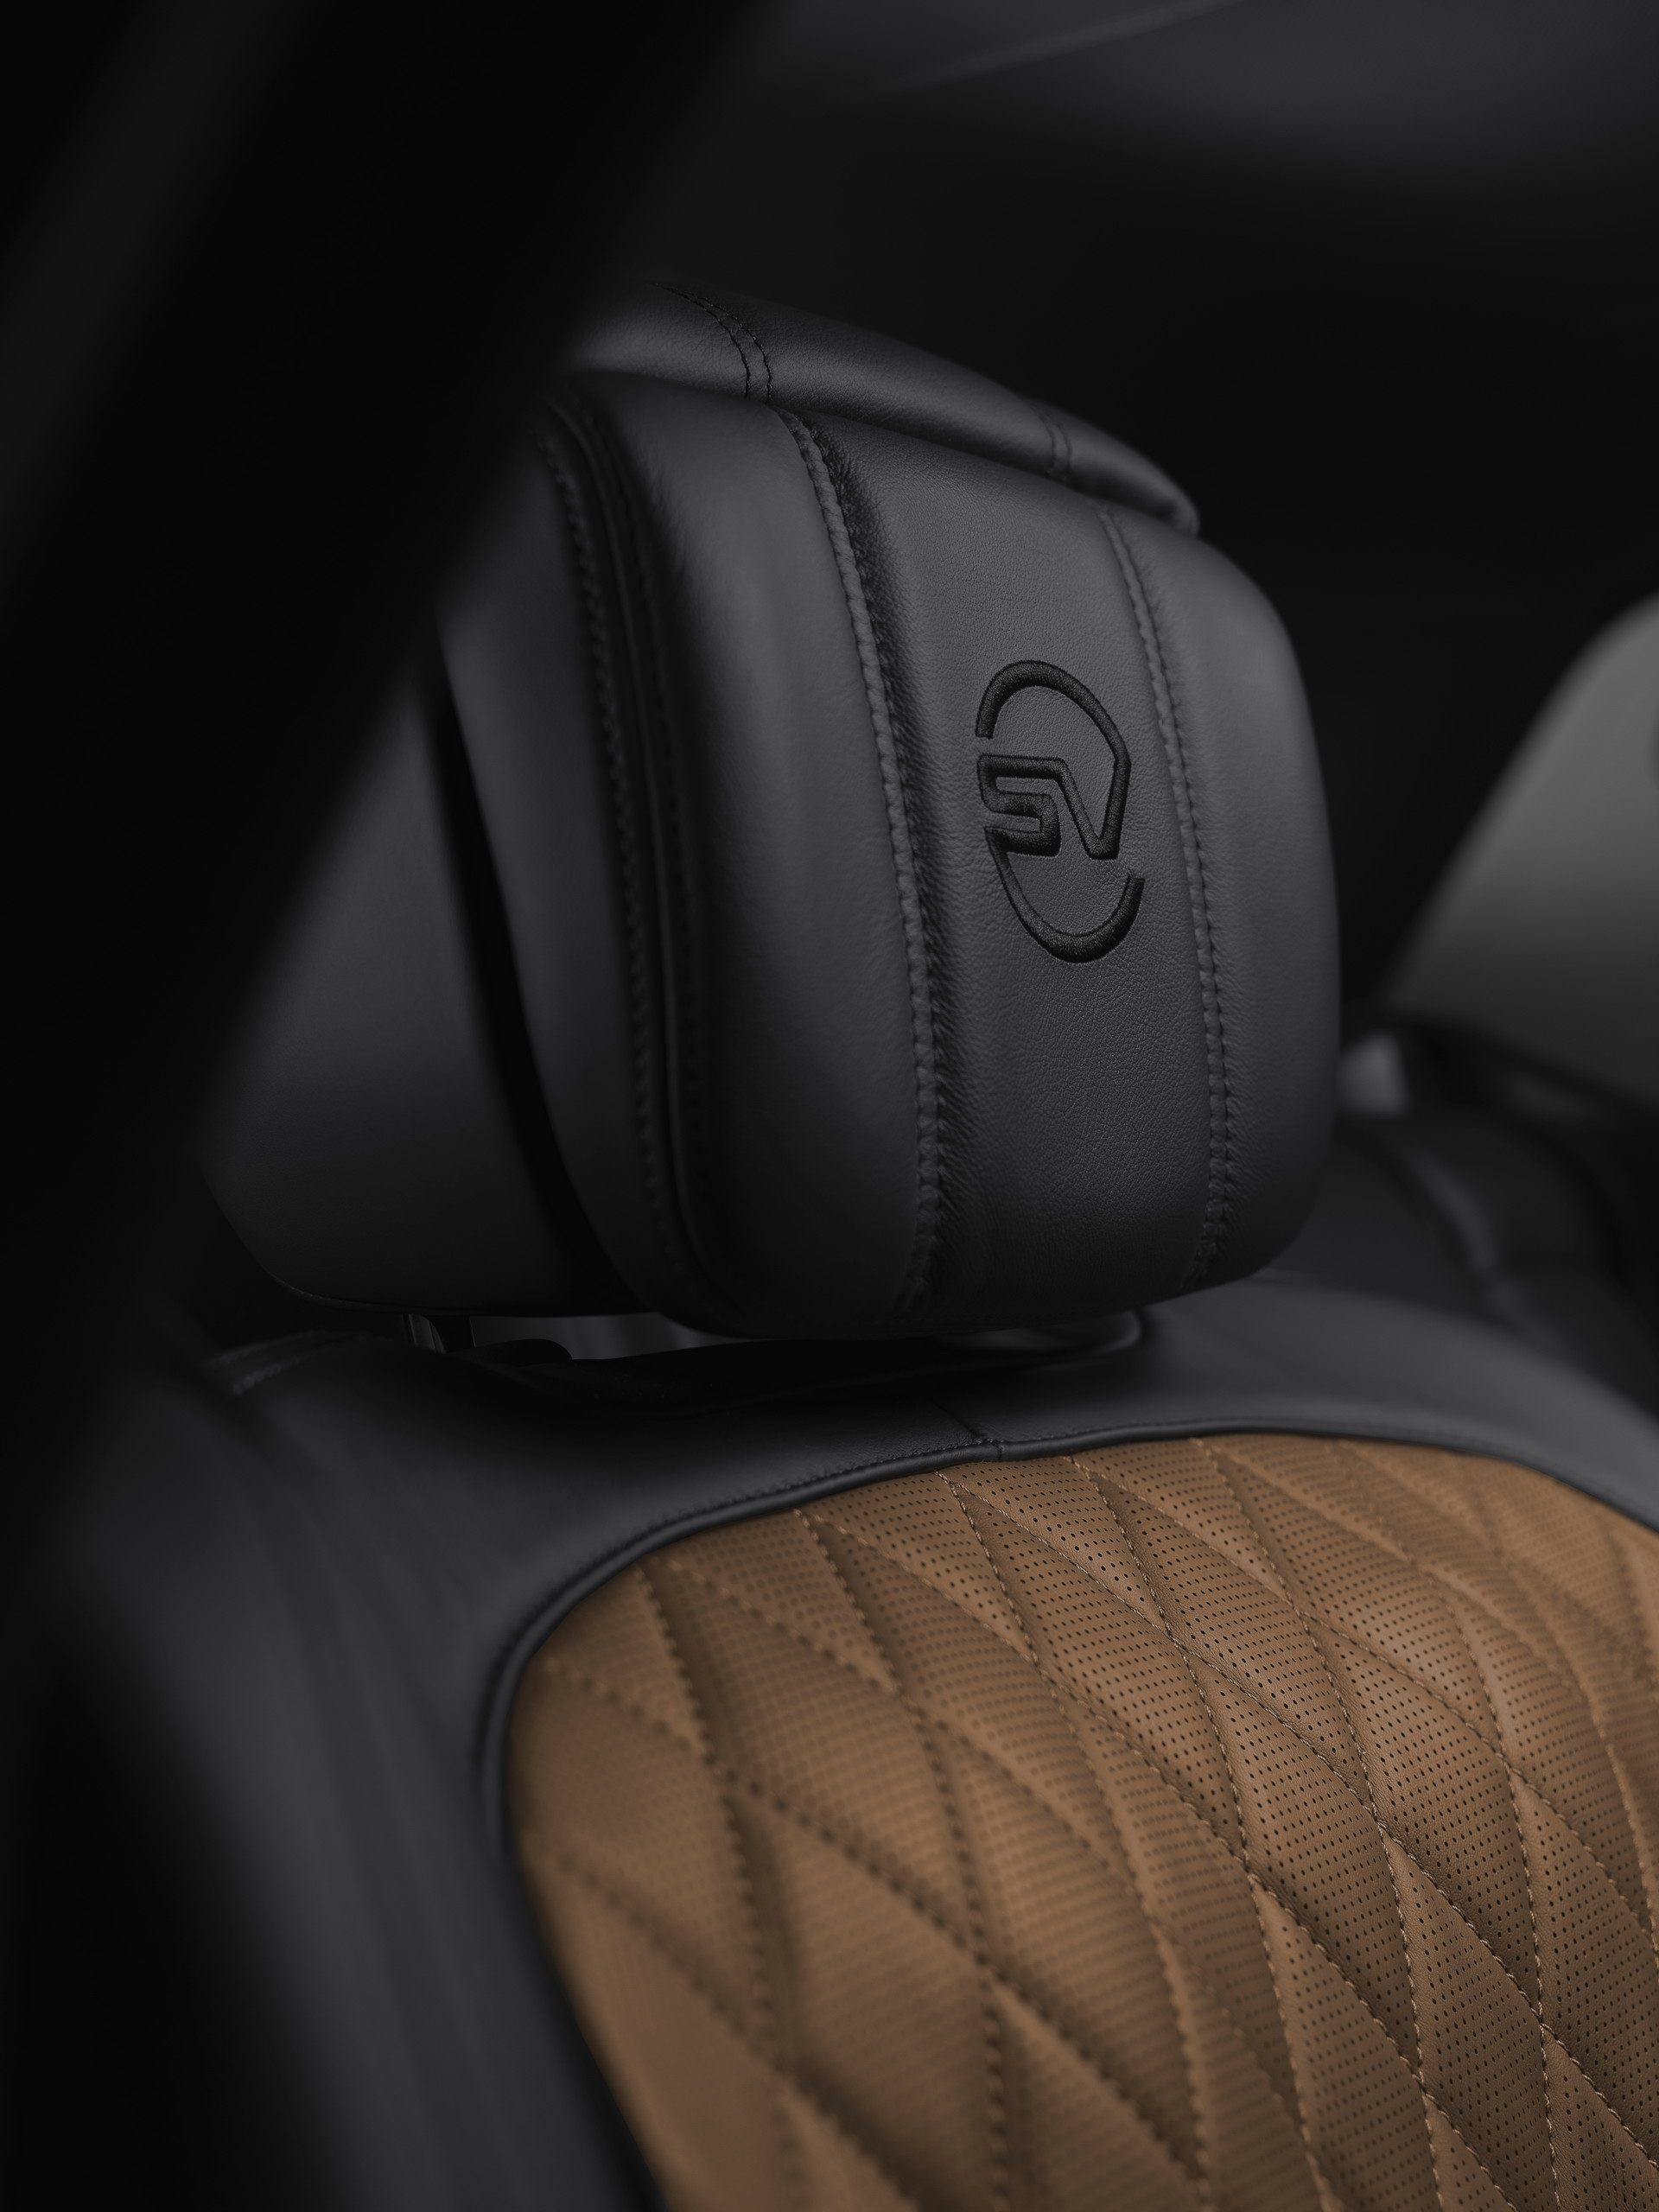 2021-range-rover-svautobiography-ultimate-editions-9